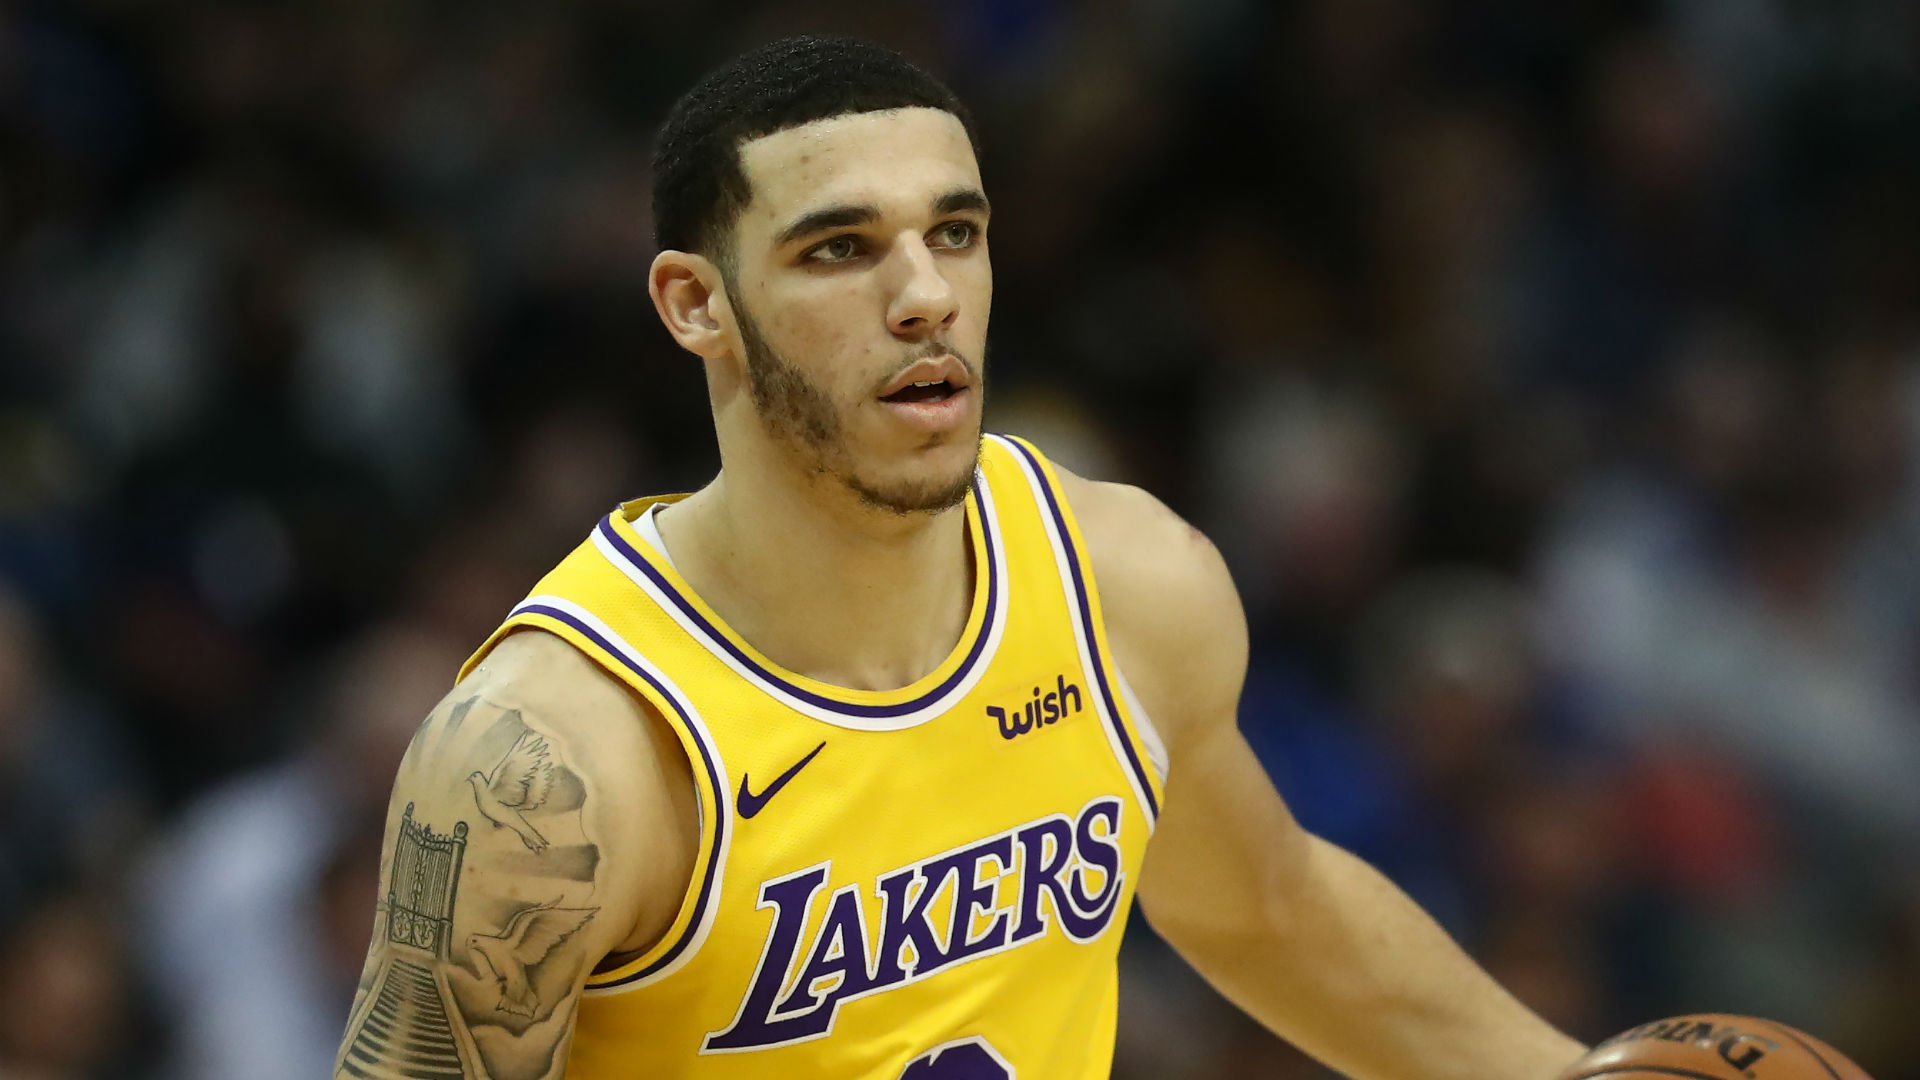 Lakers G Lonzo Ball leaves Big Baller Brand, hints at Nike deal